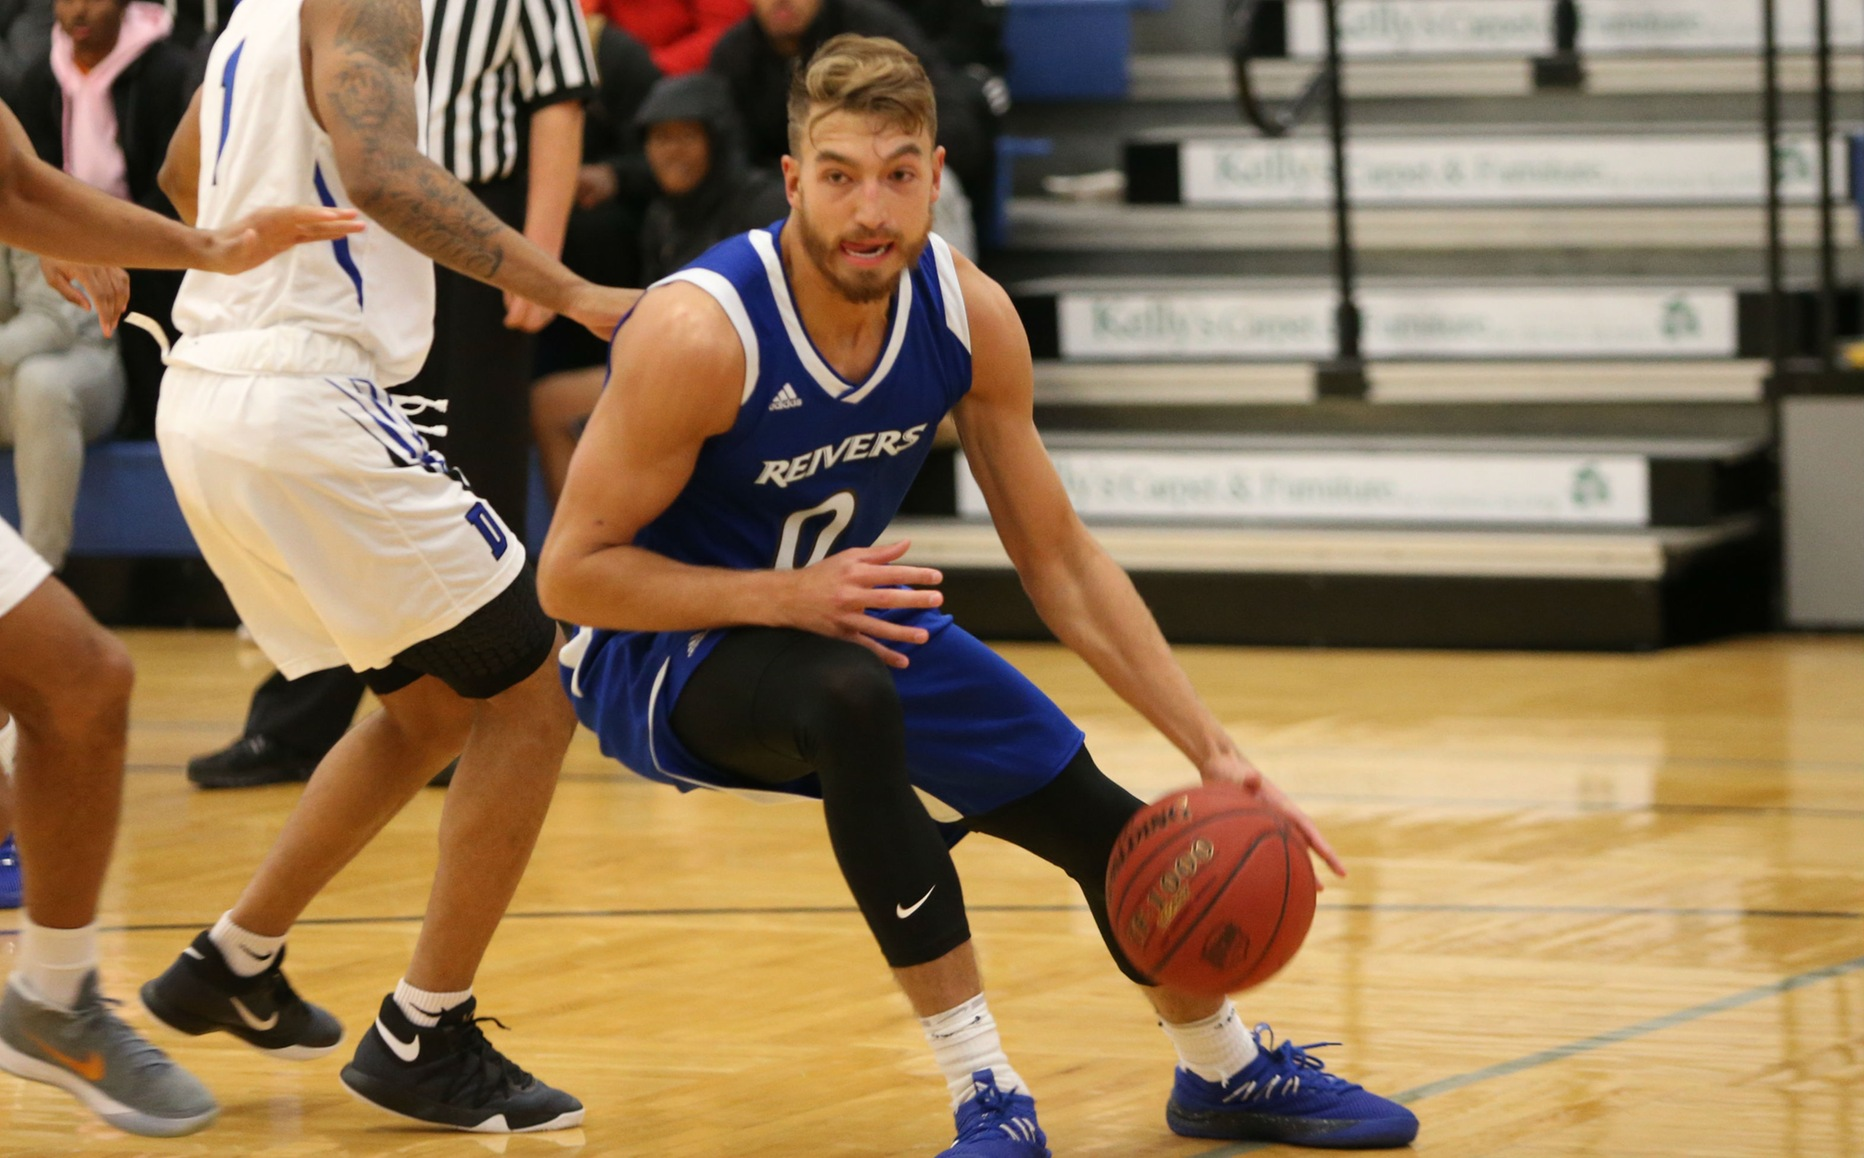 Parker Hazen and his Iowa Western teammates captured a road conference win at Marshalltown Wednesday evening (1/23/19) with a 77-70 victory over the home-standing Tigers.